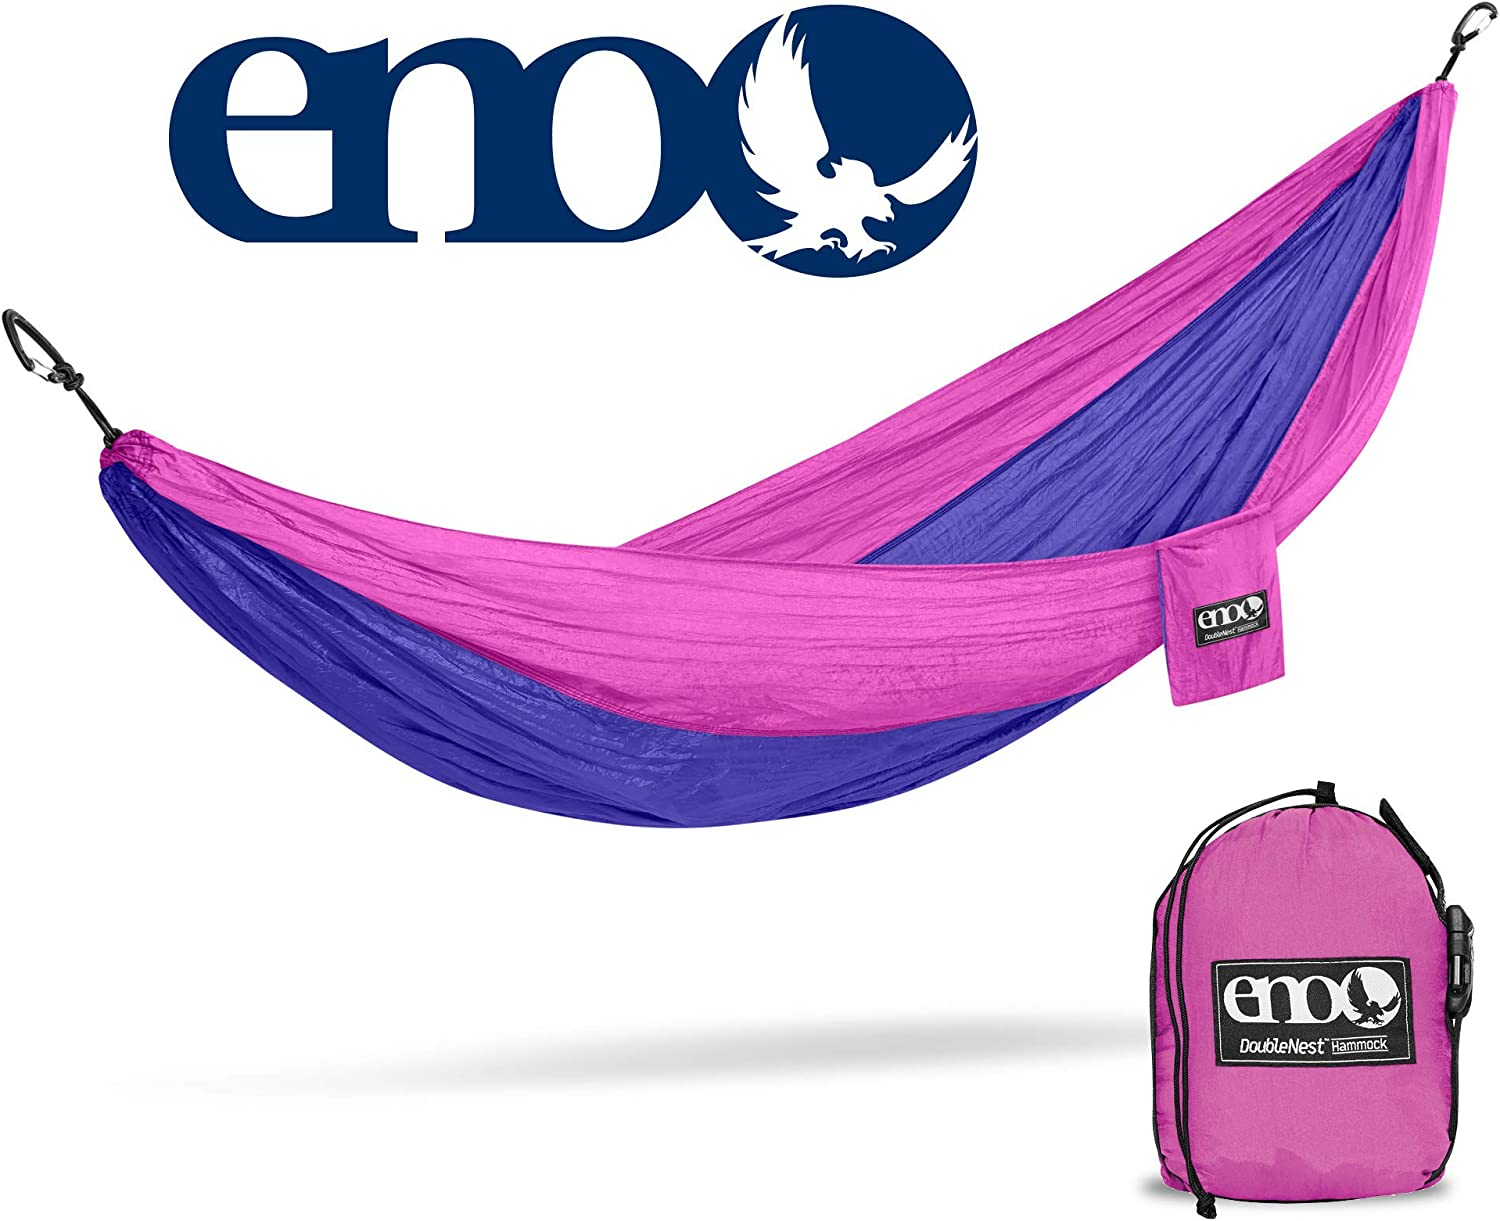 Eagles Nest Outfitters DoubleNest Lightweight Camping Hammock ENO 1 to 2 Person